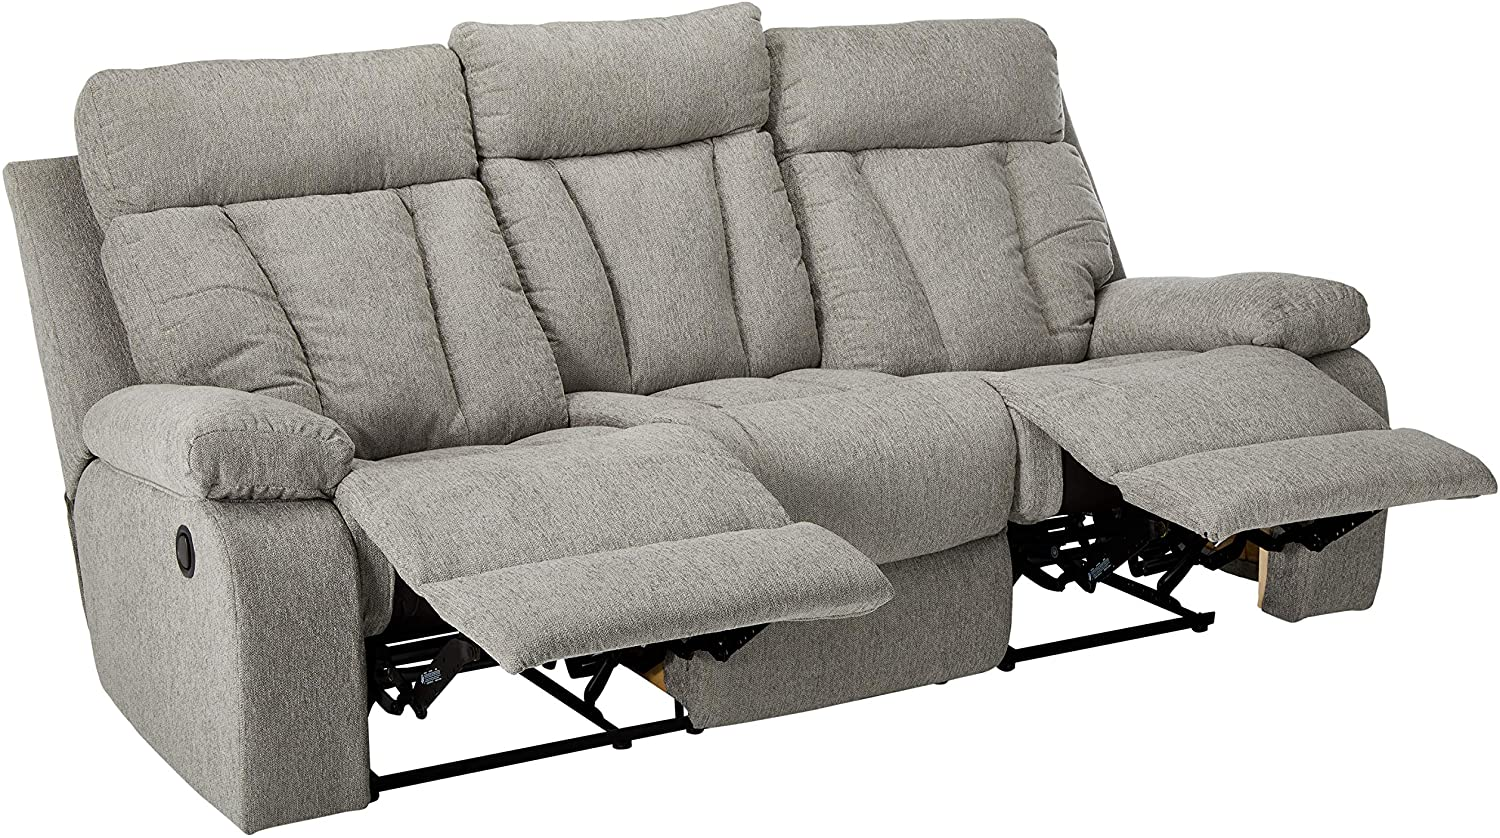 5 Best Reclining Sofas Dec 2020 Reviews Buying Guide